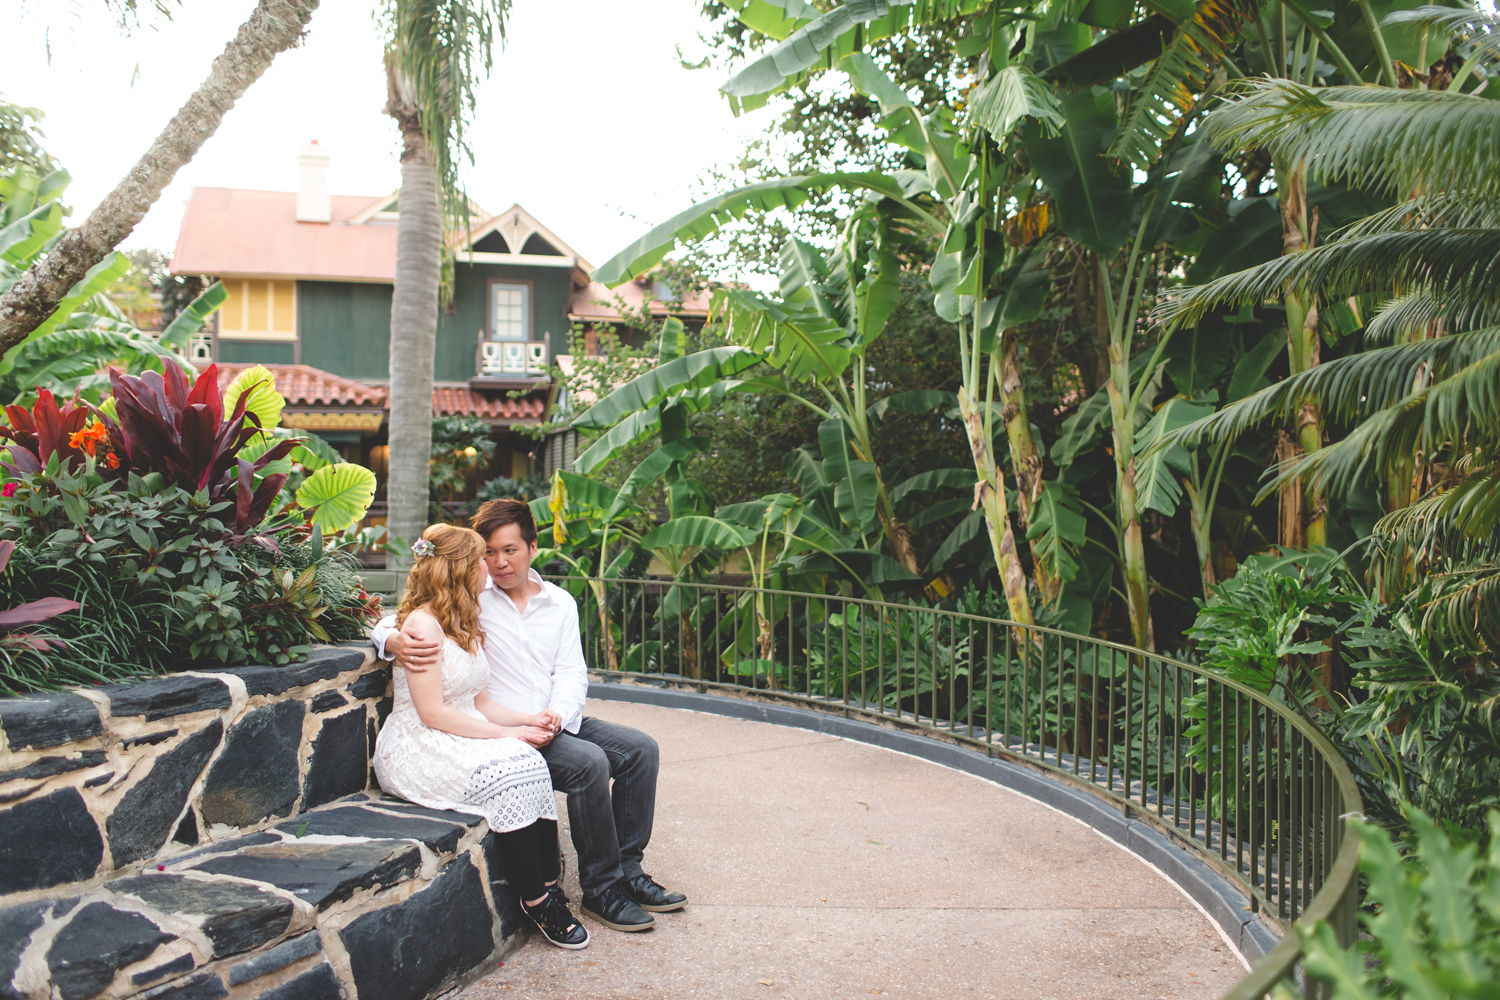 Disney Honeymoon session - Disney Engagement Photos - Disney Wedding Photographer - Destination Orlando Wedding Photographer - Jaime DiOrio (47).jpg